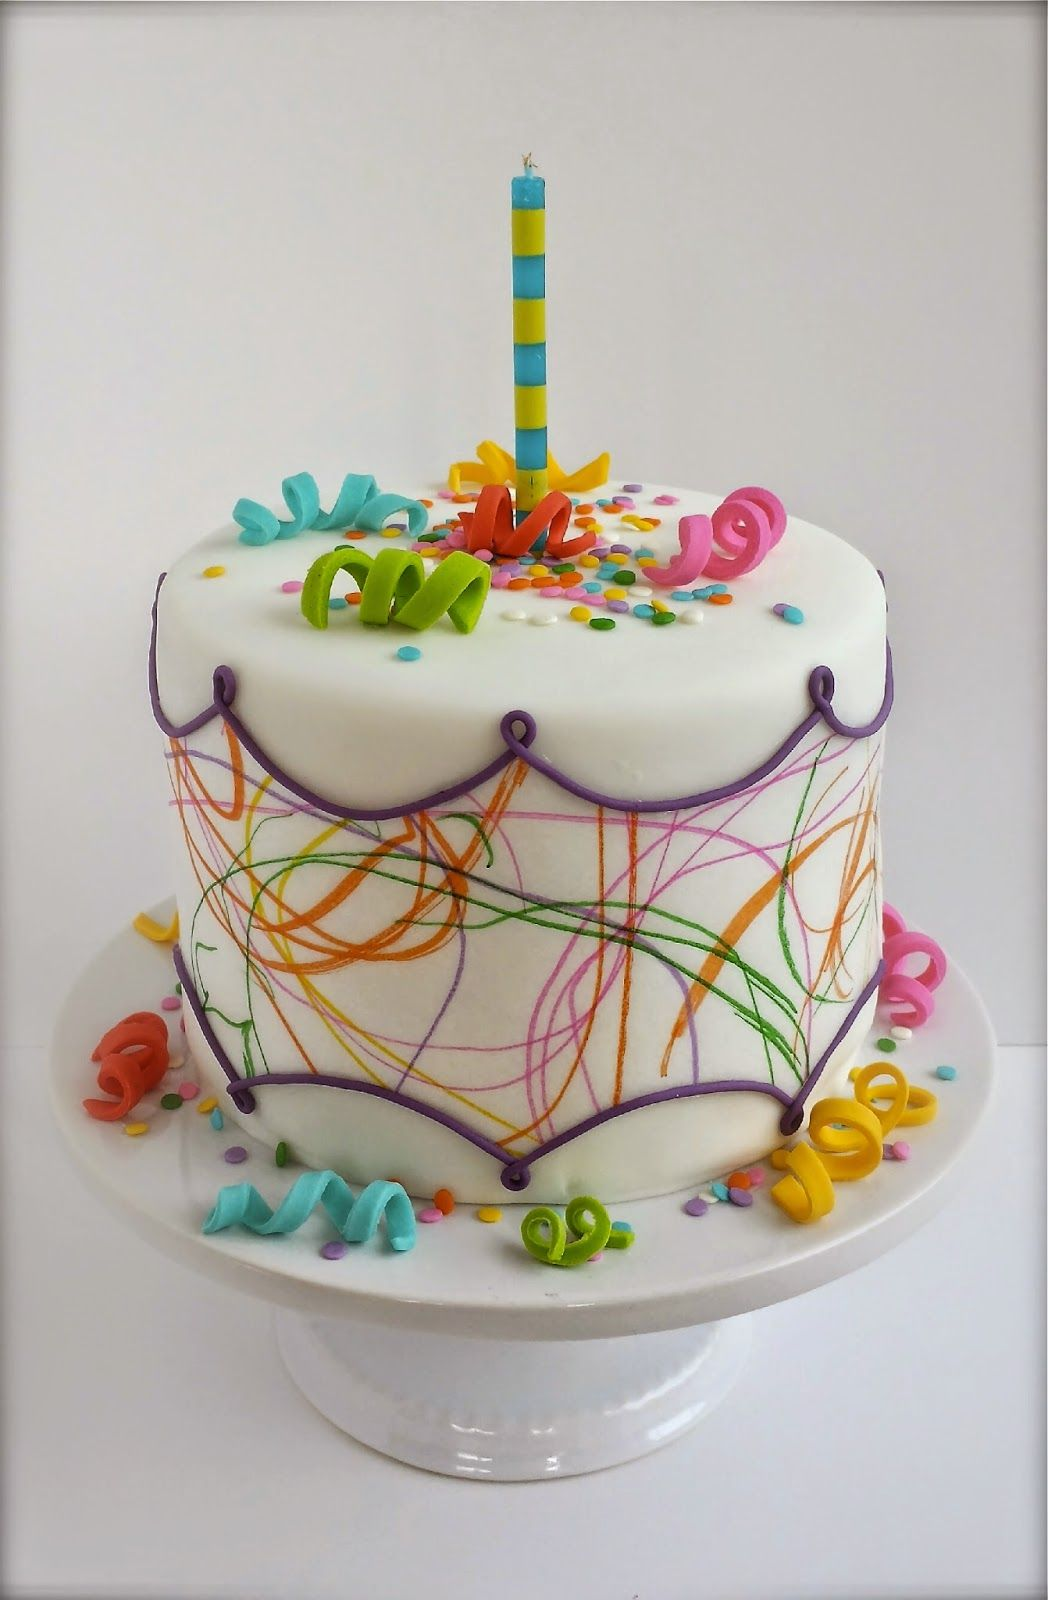 Toddler Art Birthday Cake kids use edible markers and wafer paper